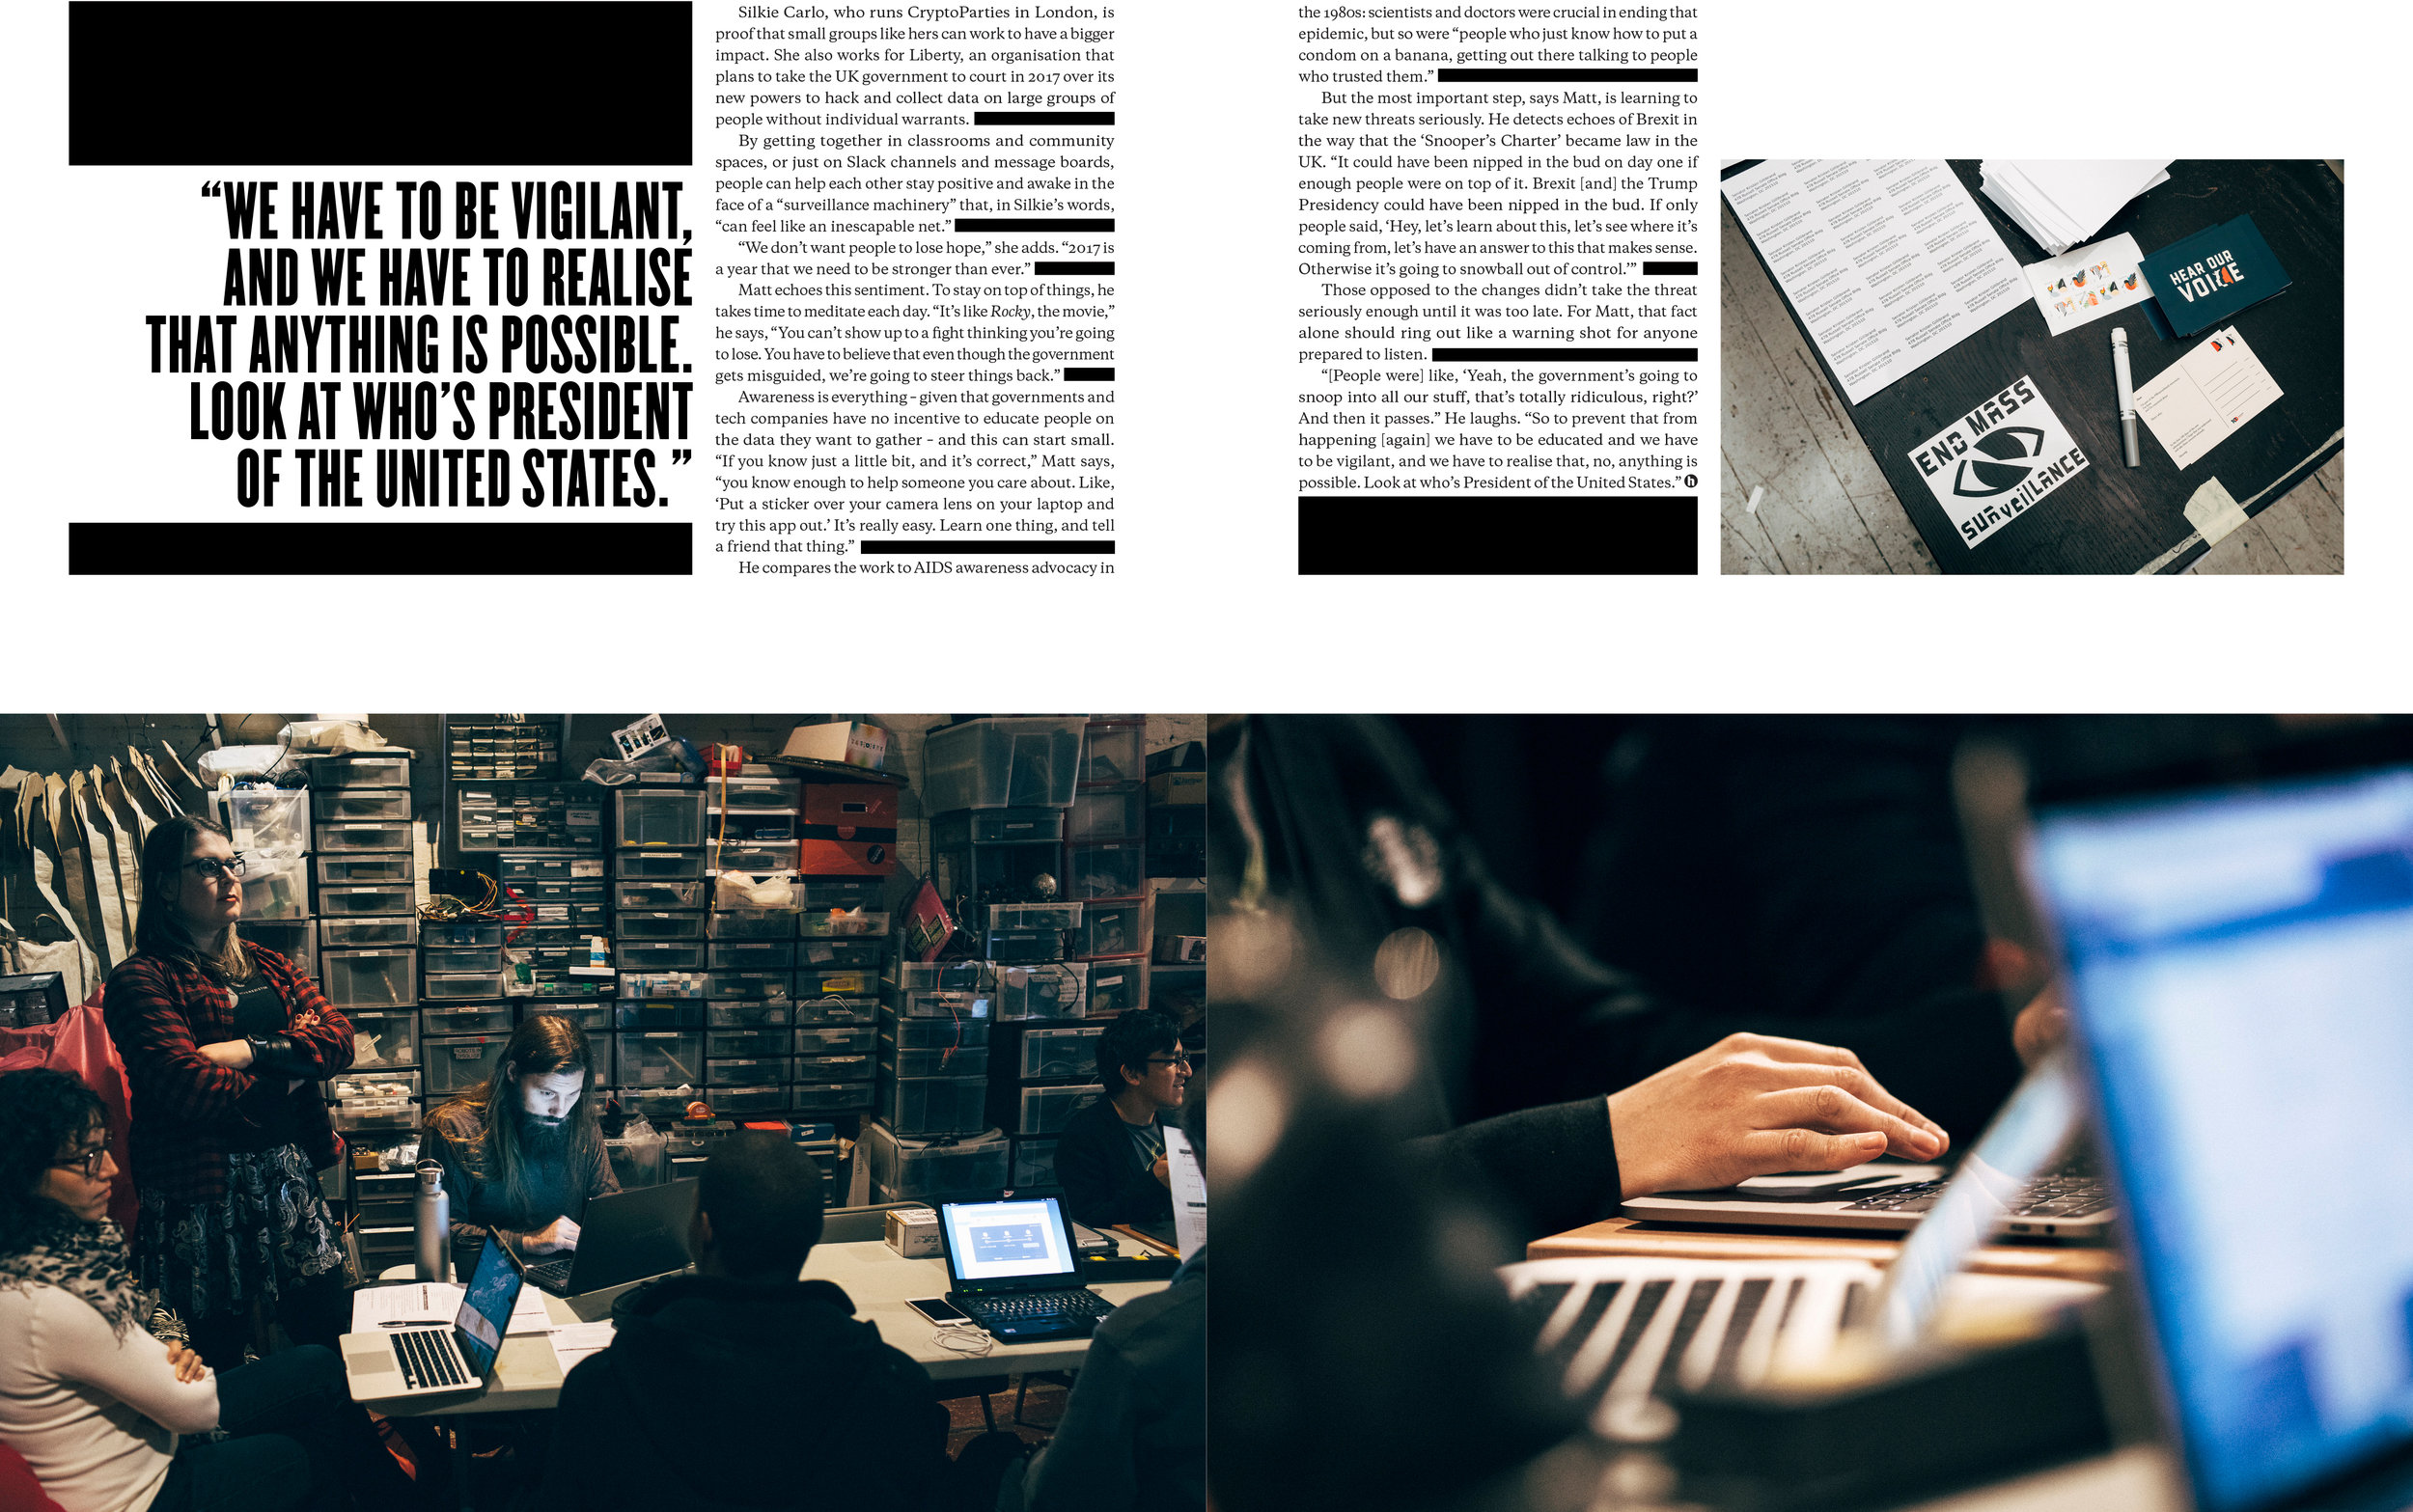 Cryptoparties for Huck Magazine